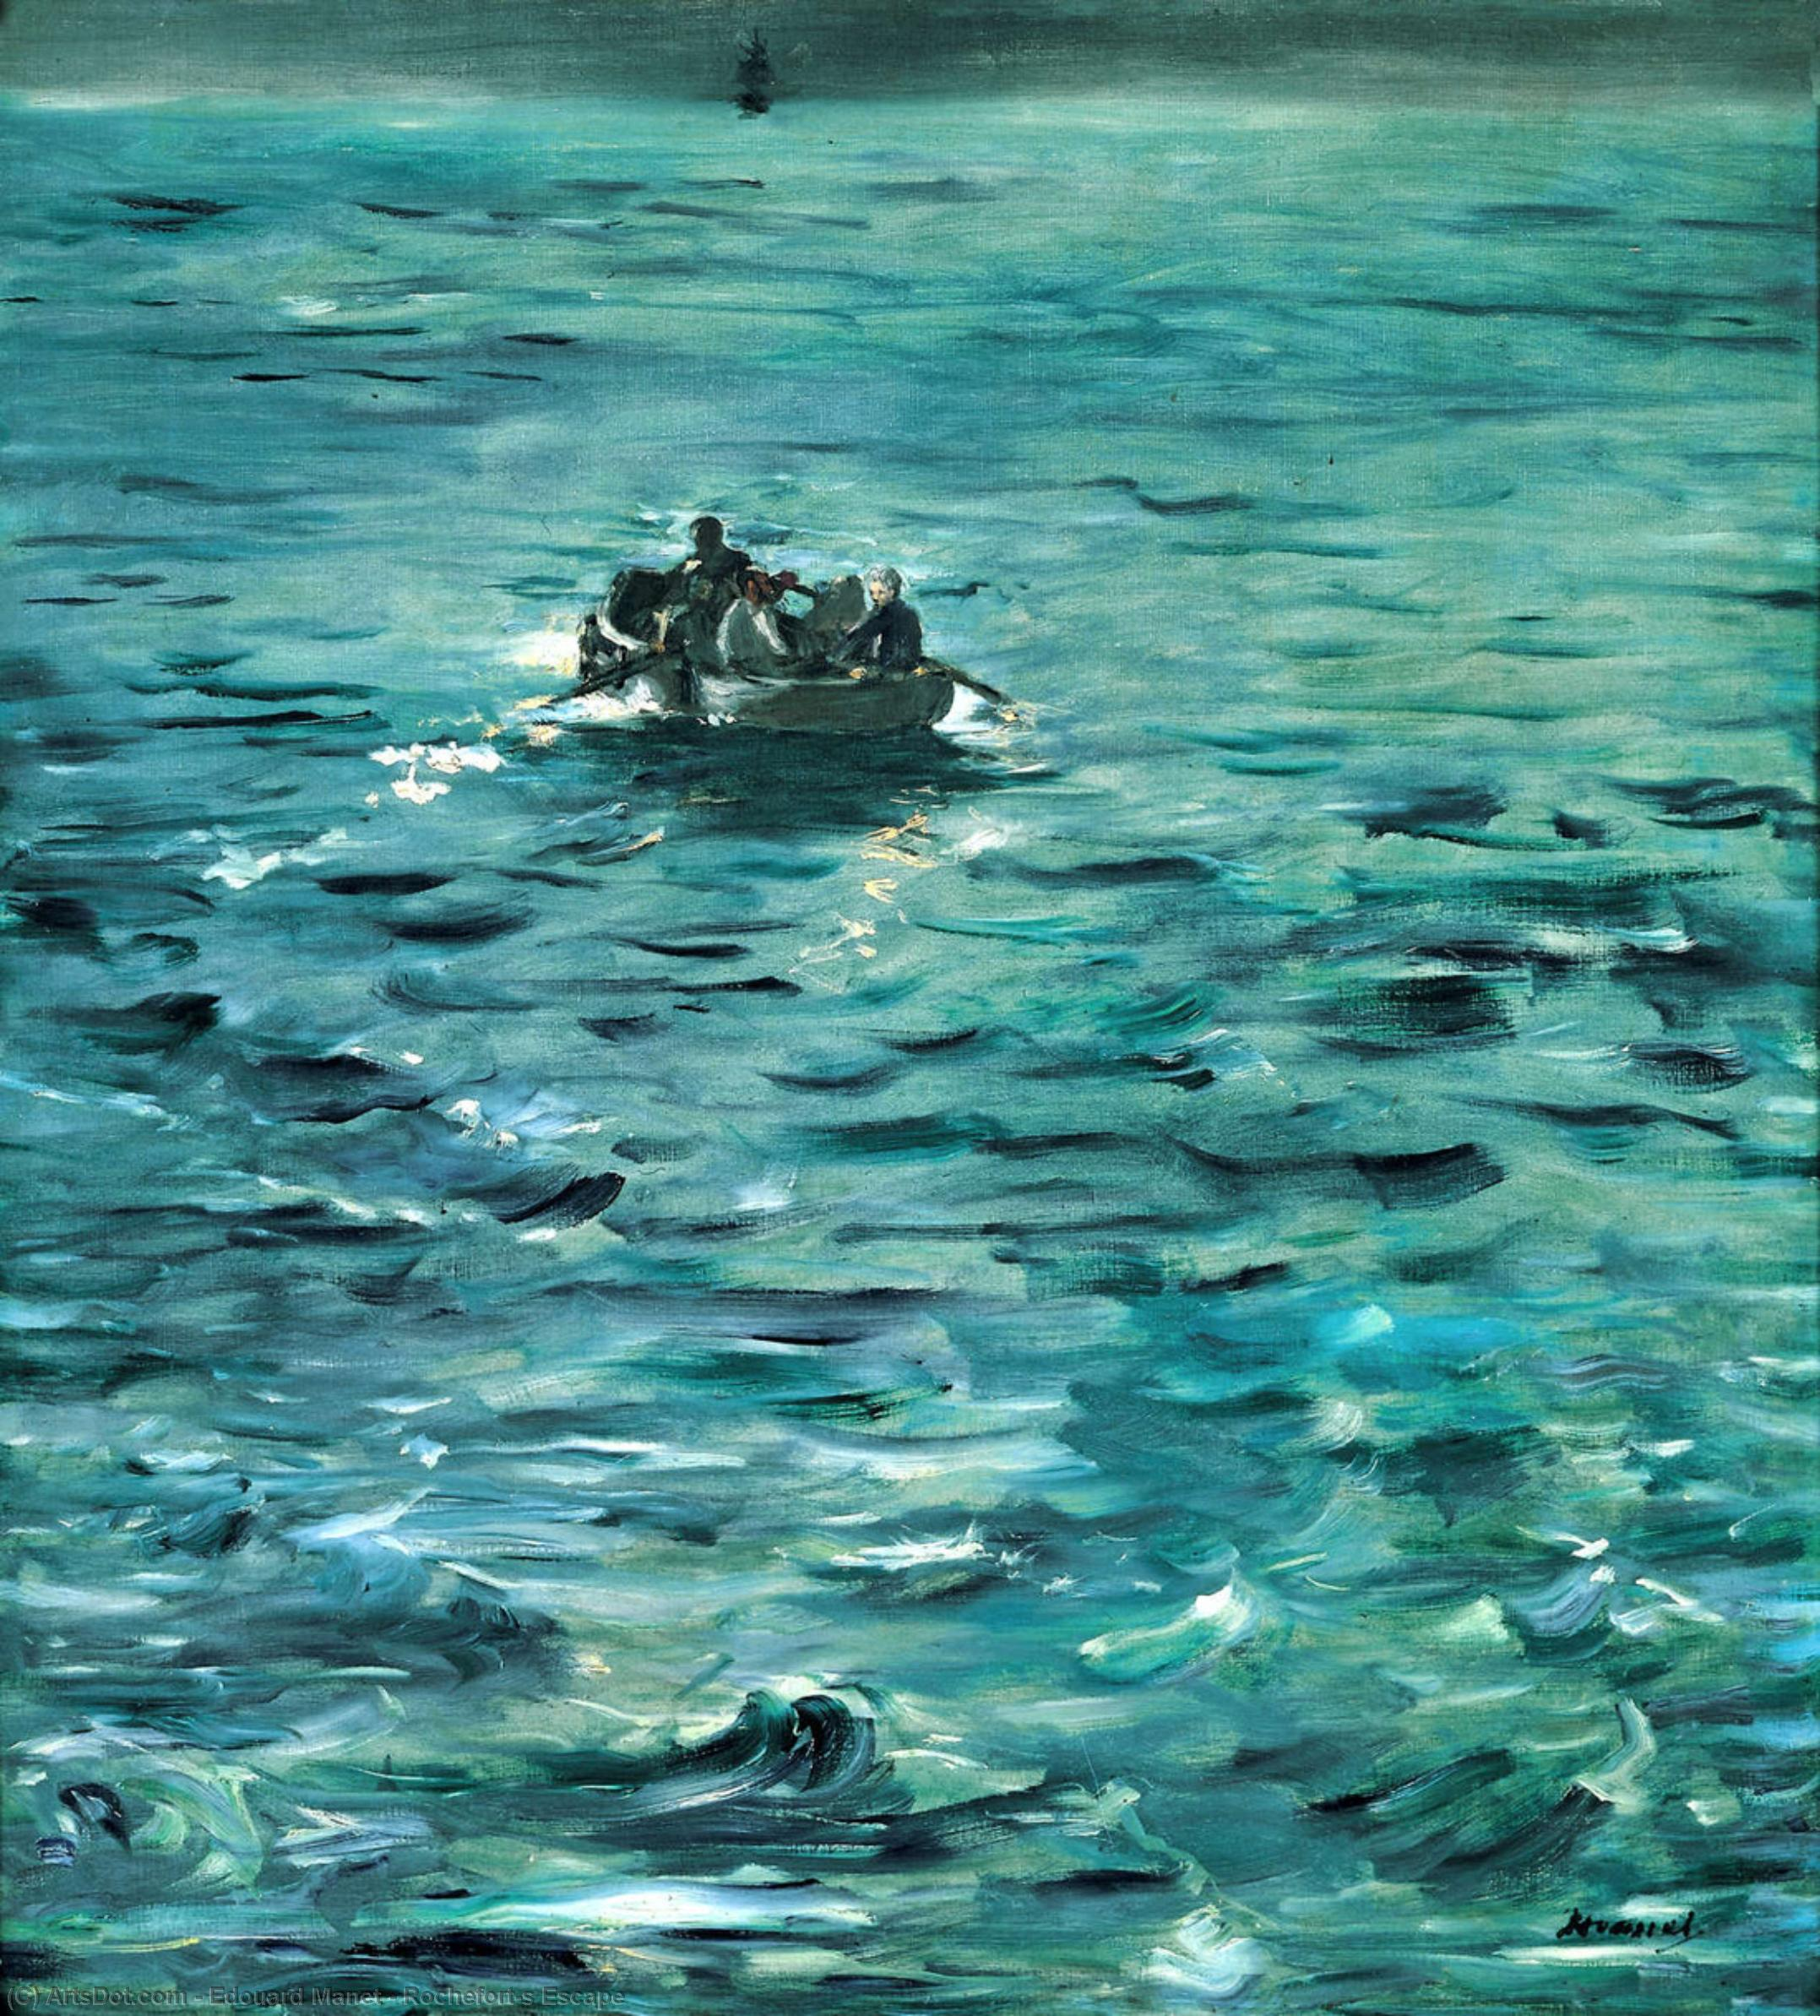 Wikioo.org - The Encyclopedia of Fine Arts - Painting, Artwork by Edouard Manet - Rochefort's Escape